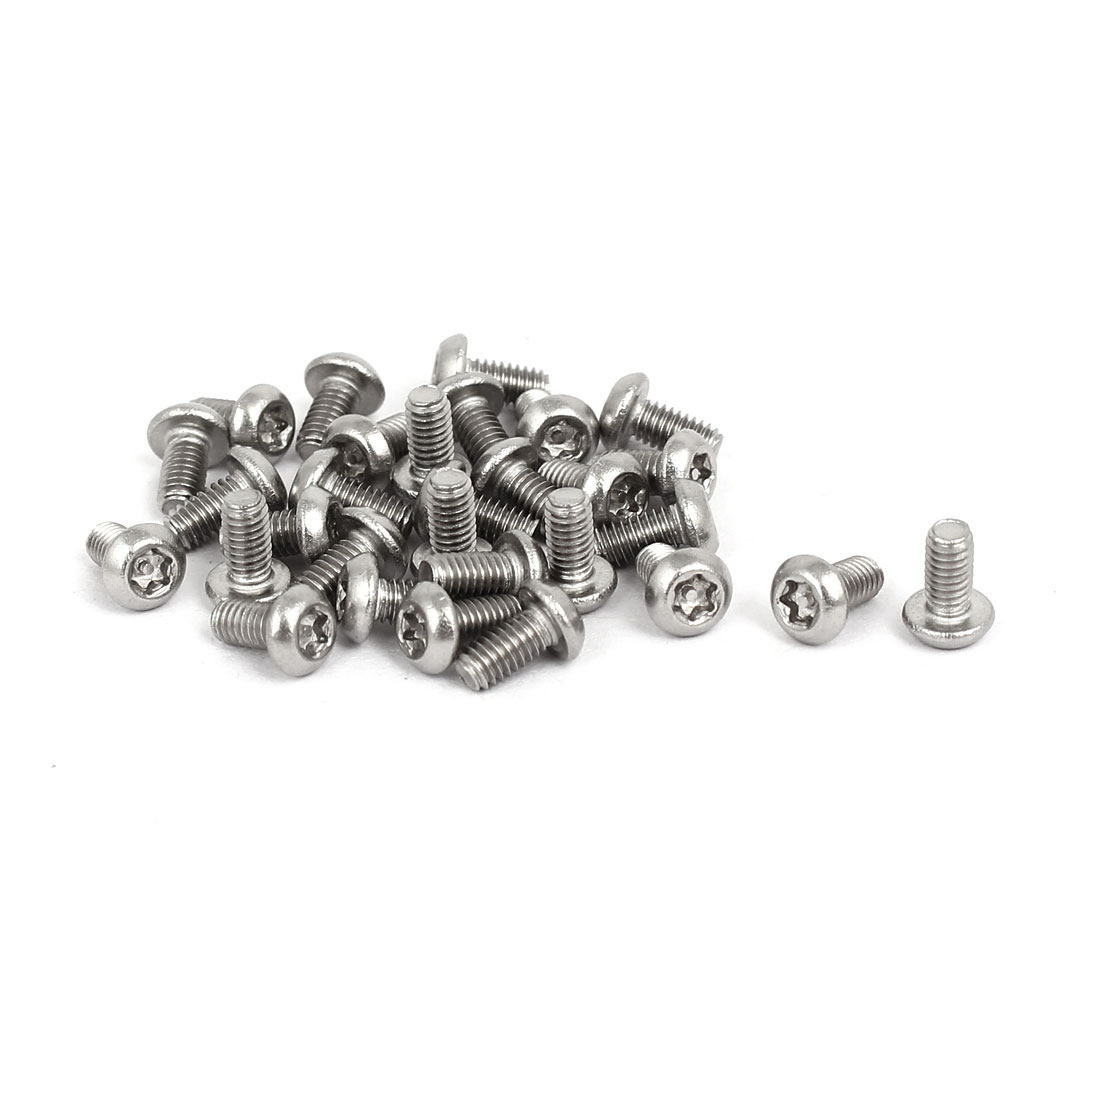 M2.5x5mm 304 Stainless Steel Button Head Torx Security Machine Screws 30pcs